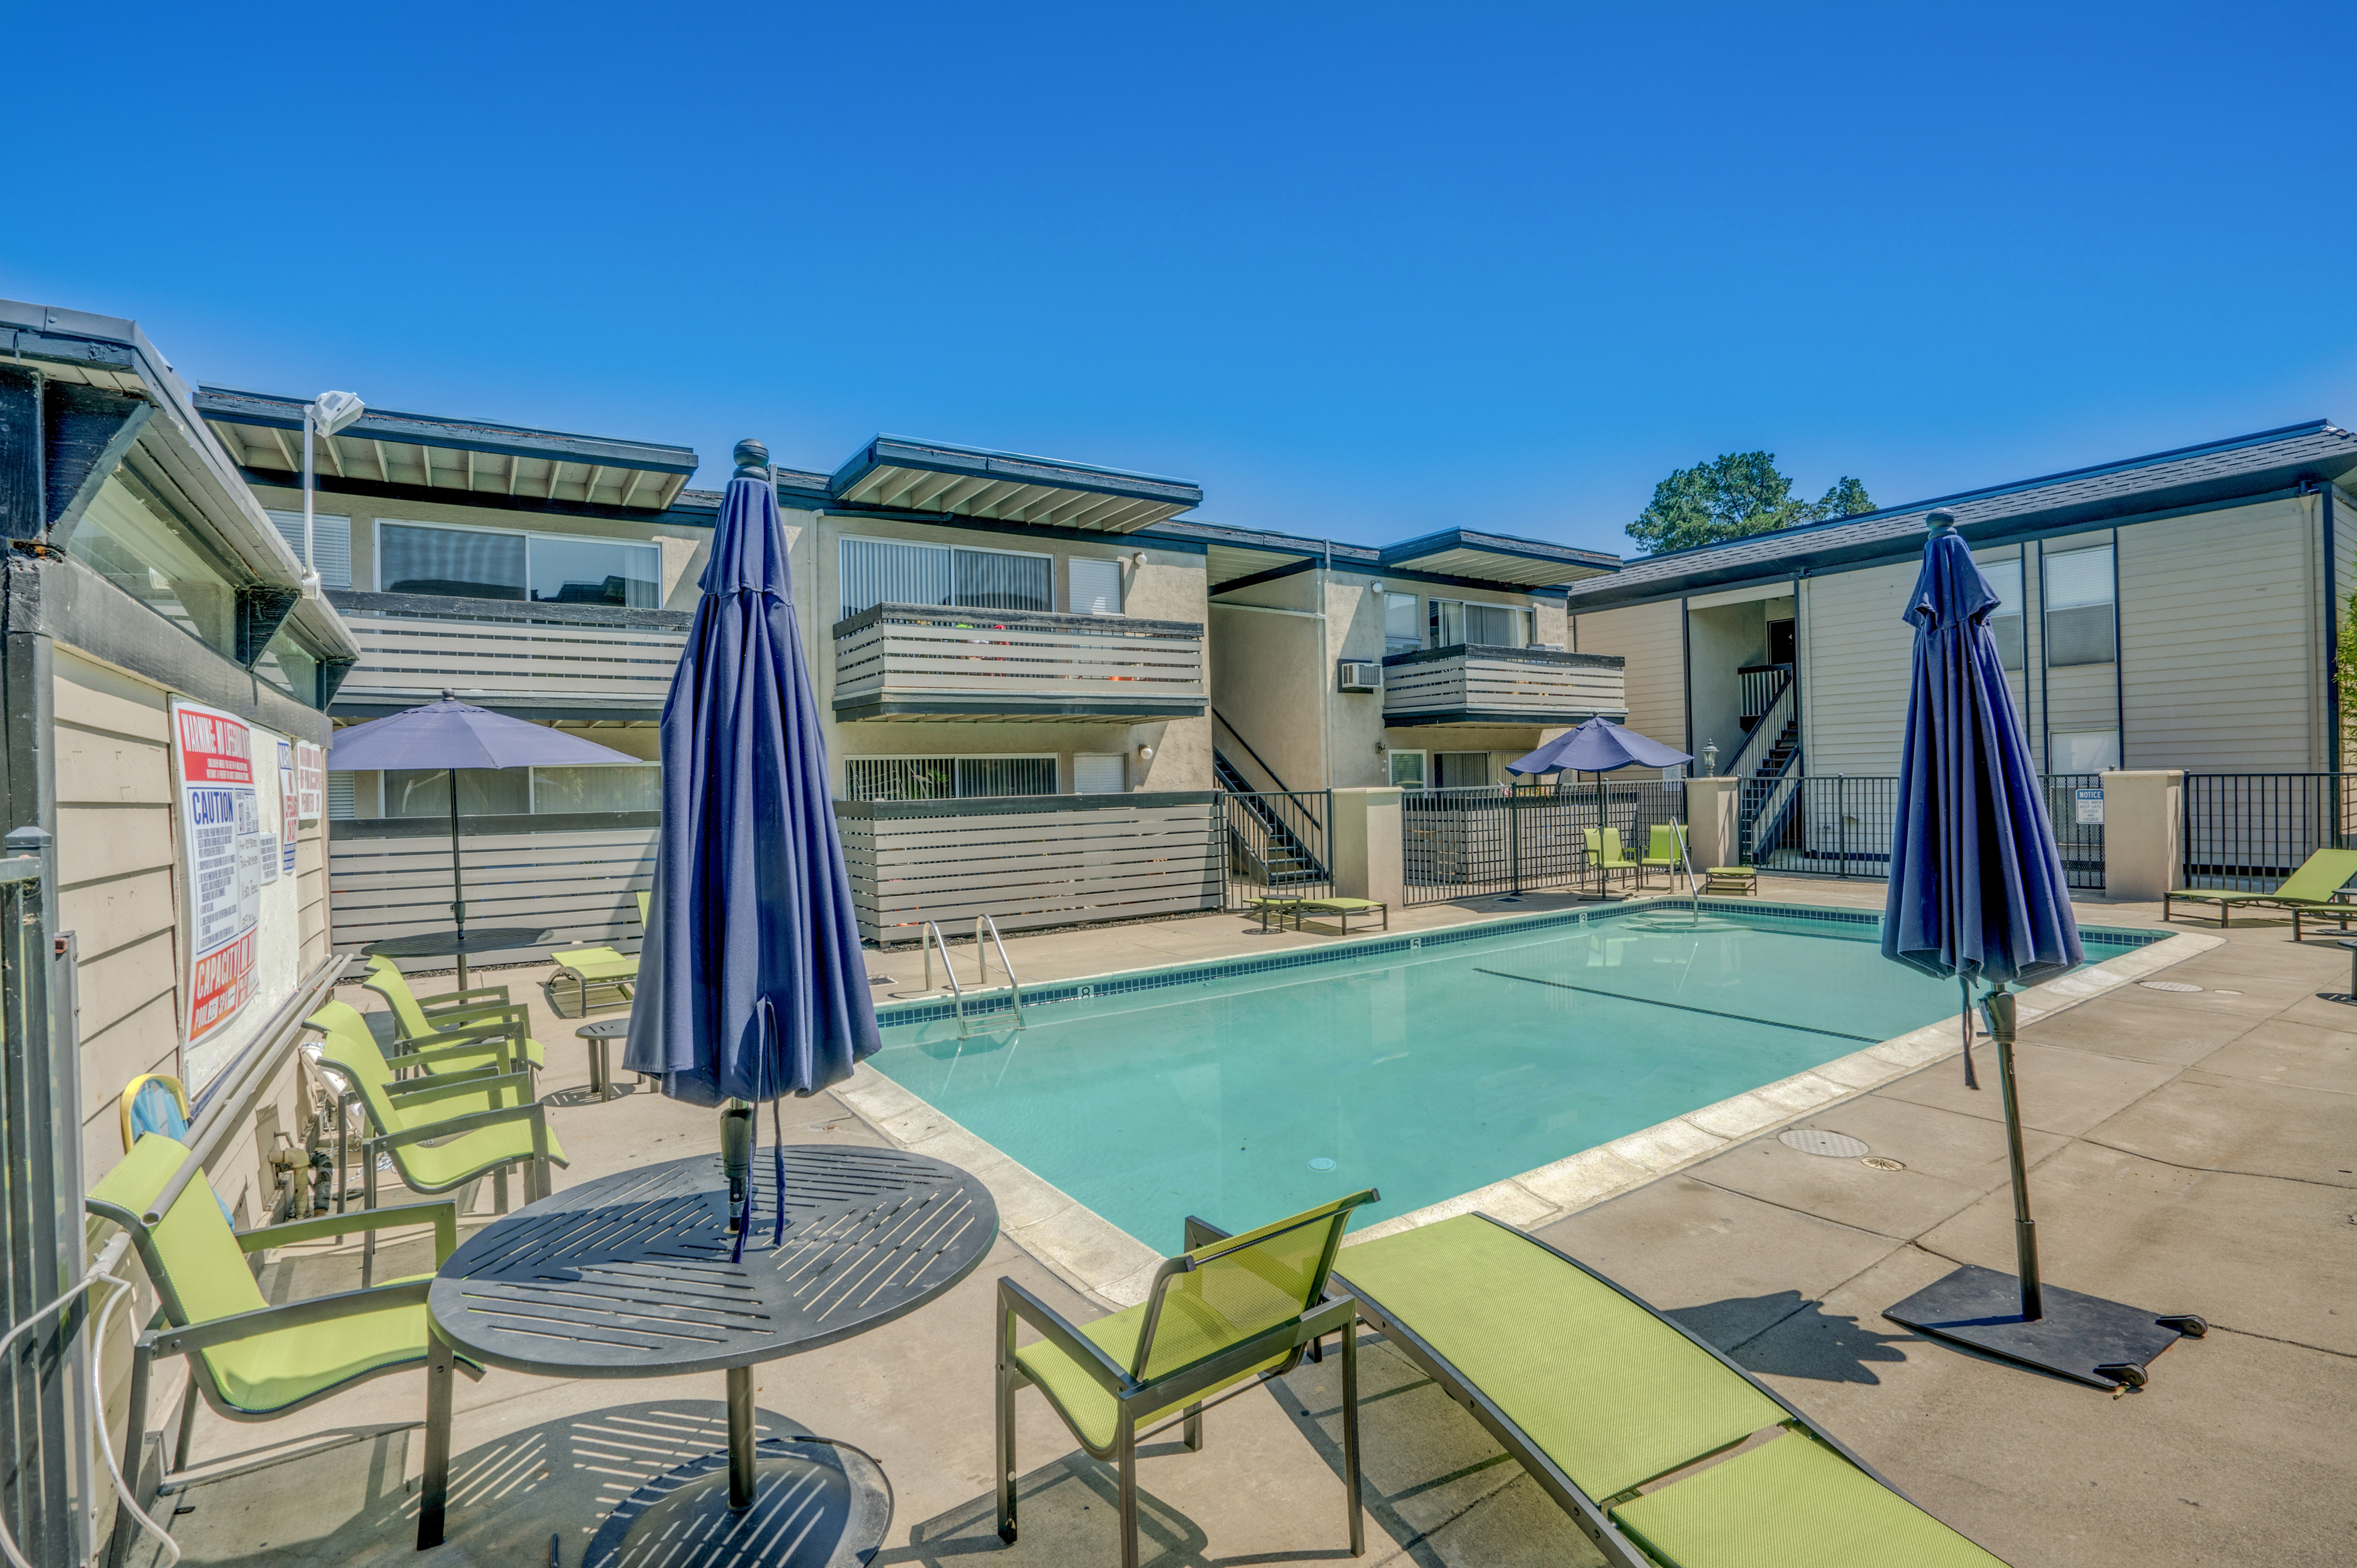 Image of Pool for Vista Terrace